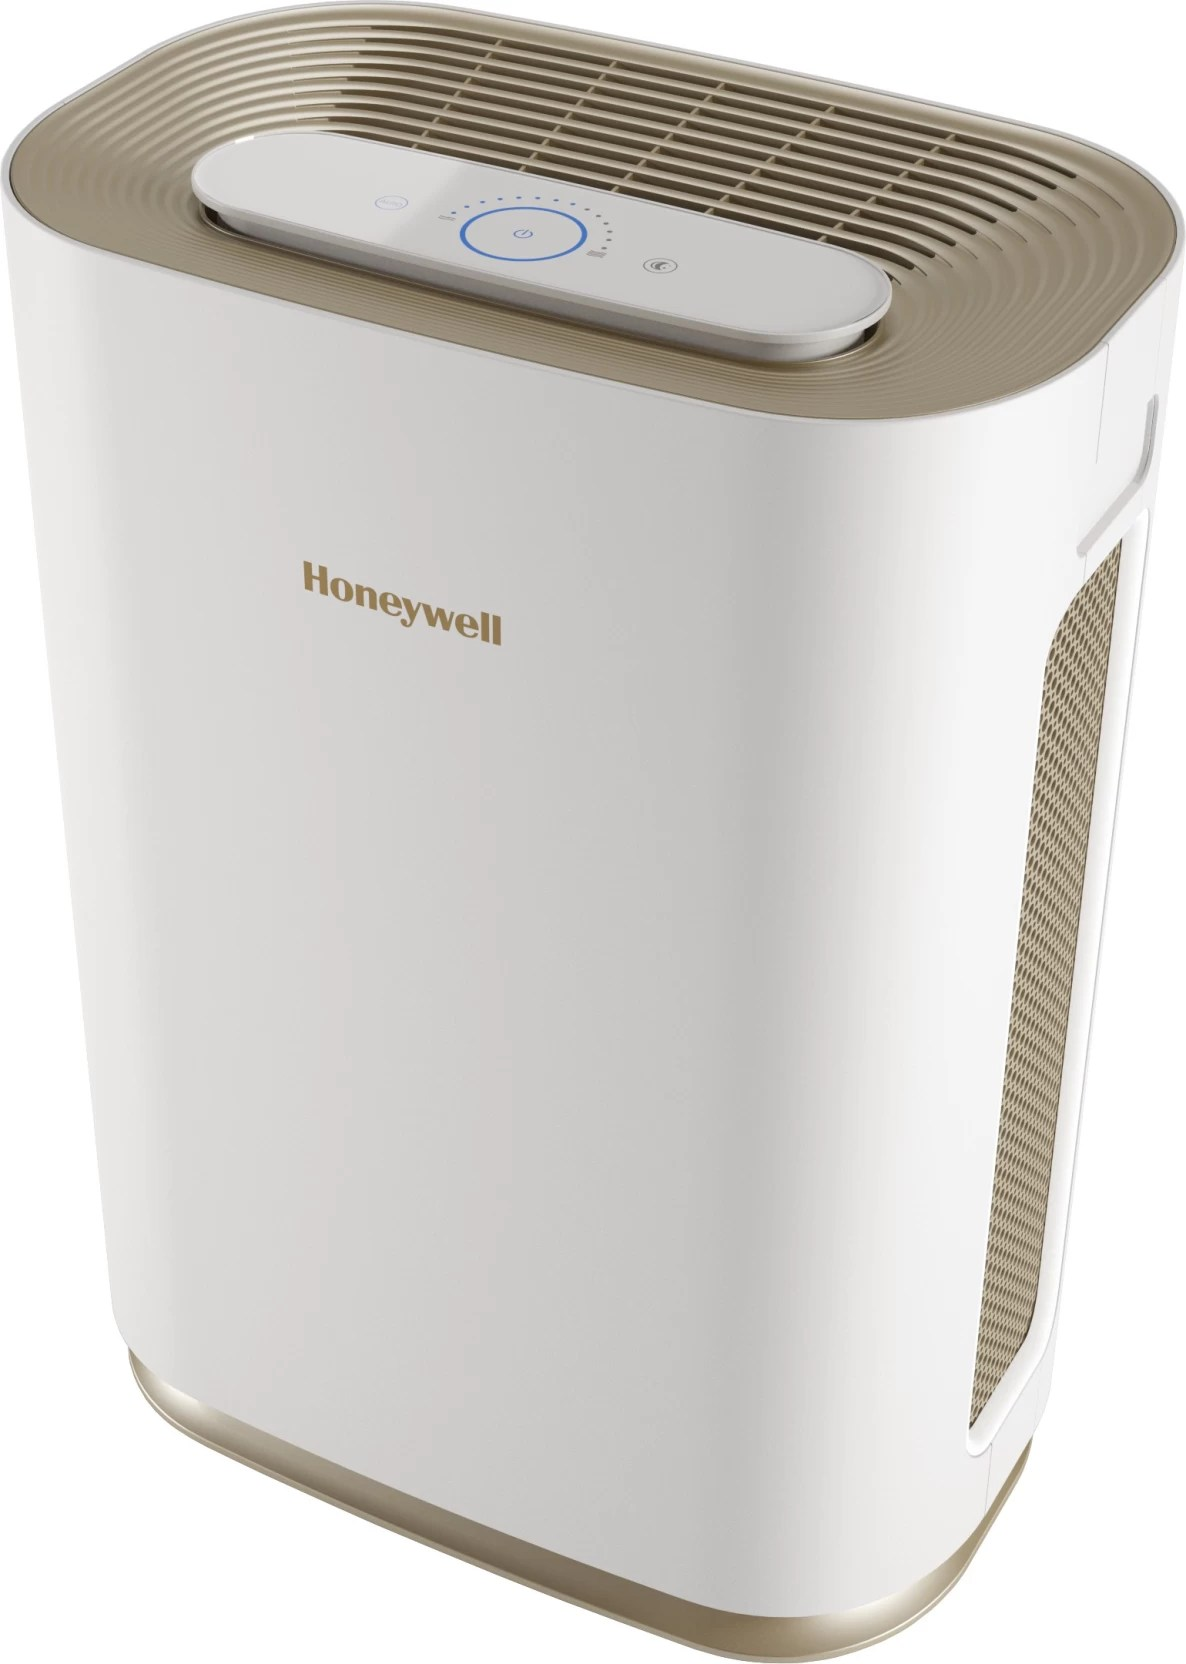 Honeywell HAC45M1022W Portable Room Air Purifier Price in ...